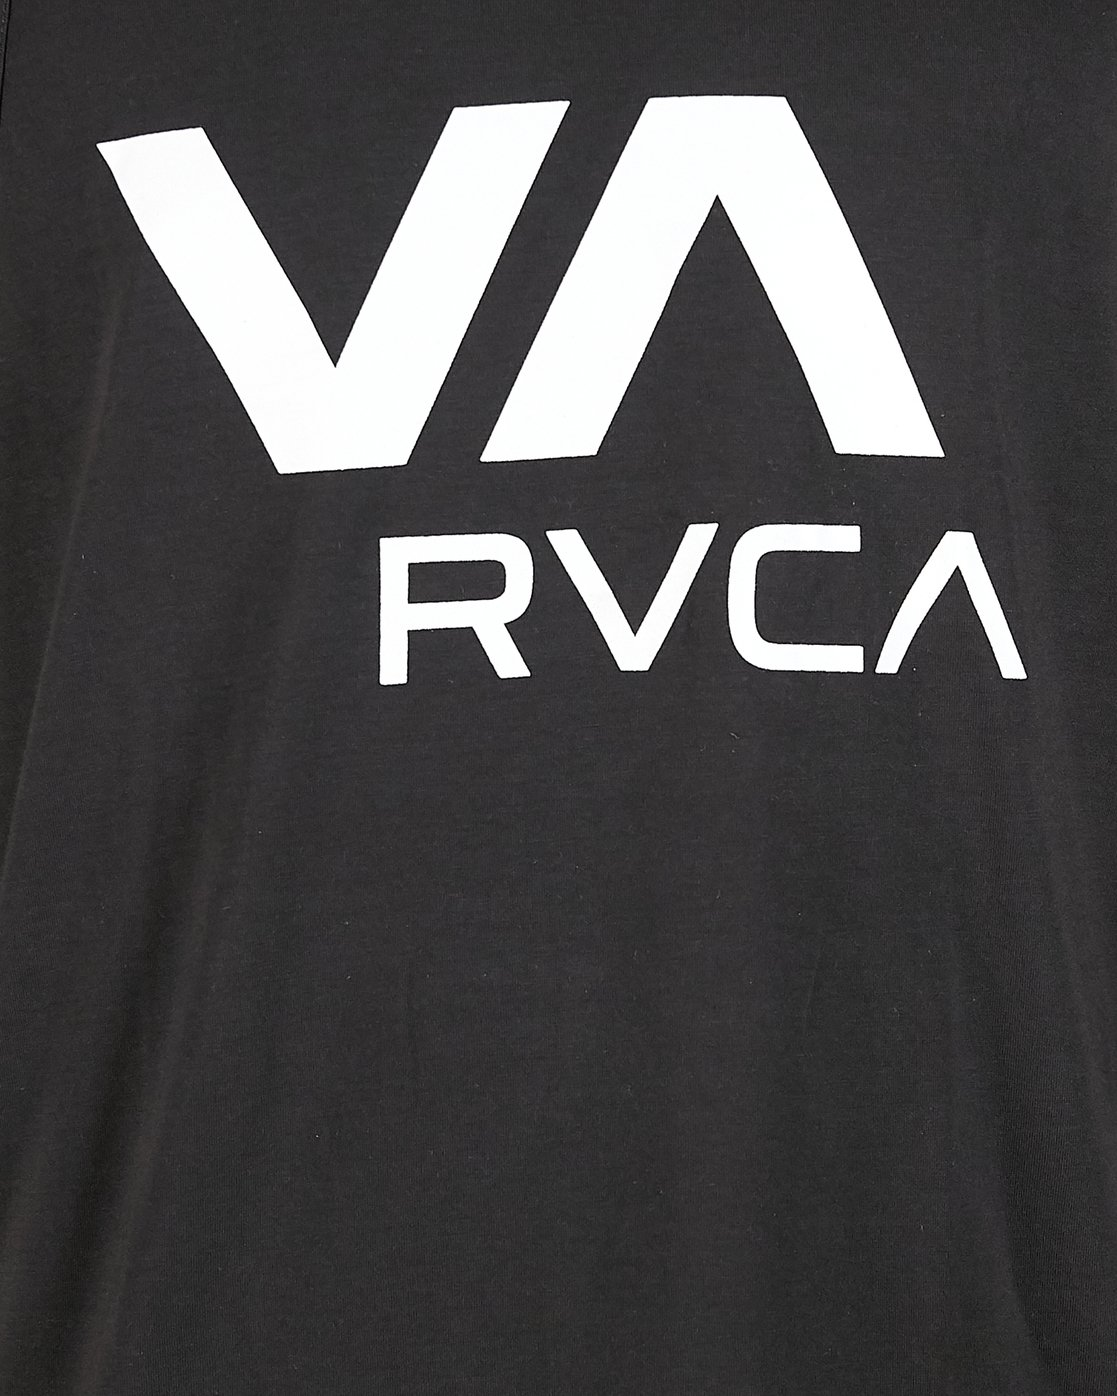 5 Va Rvca Tank Top Black R305007 RVCA